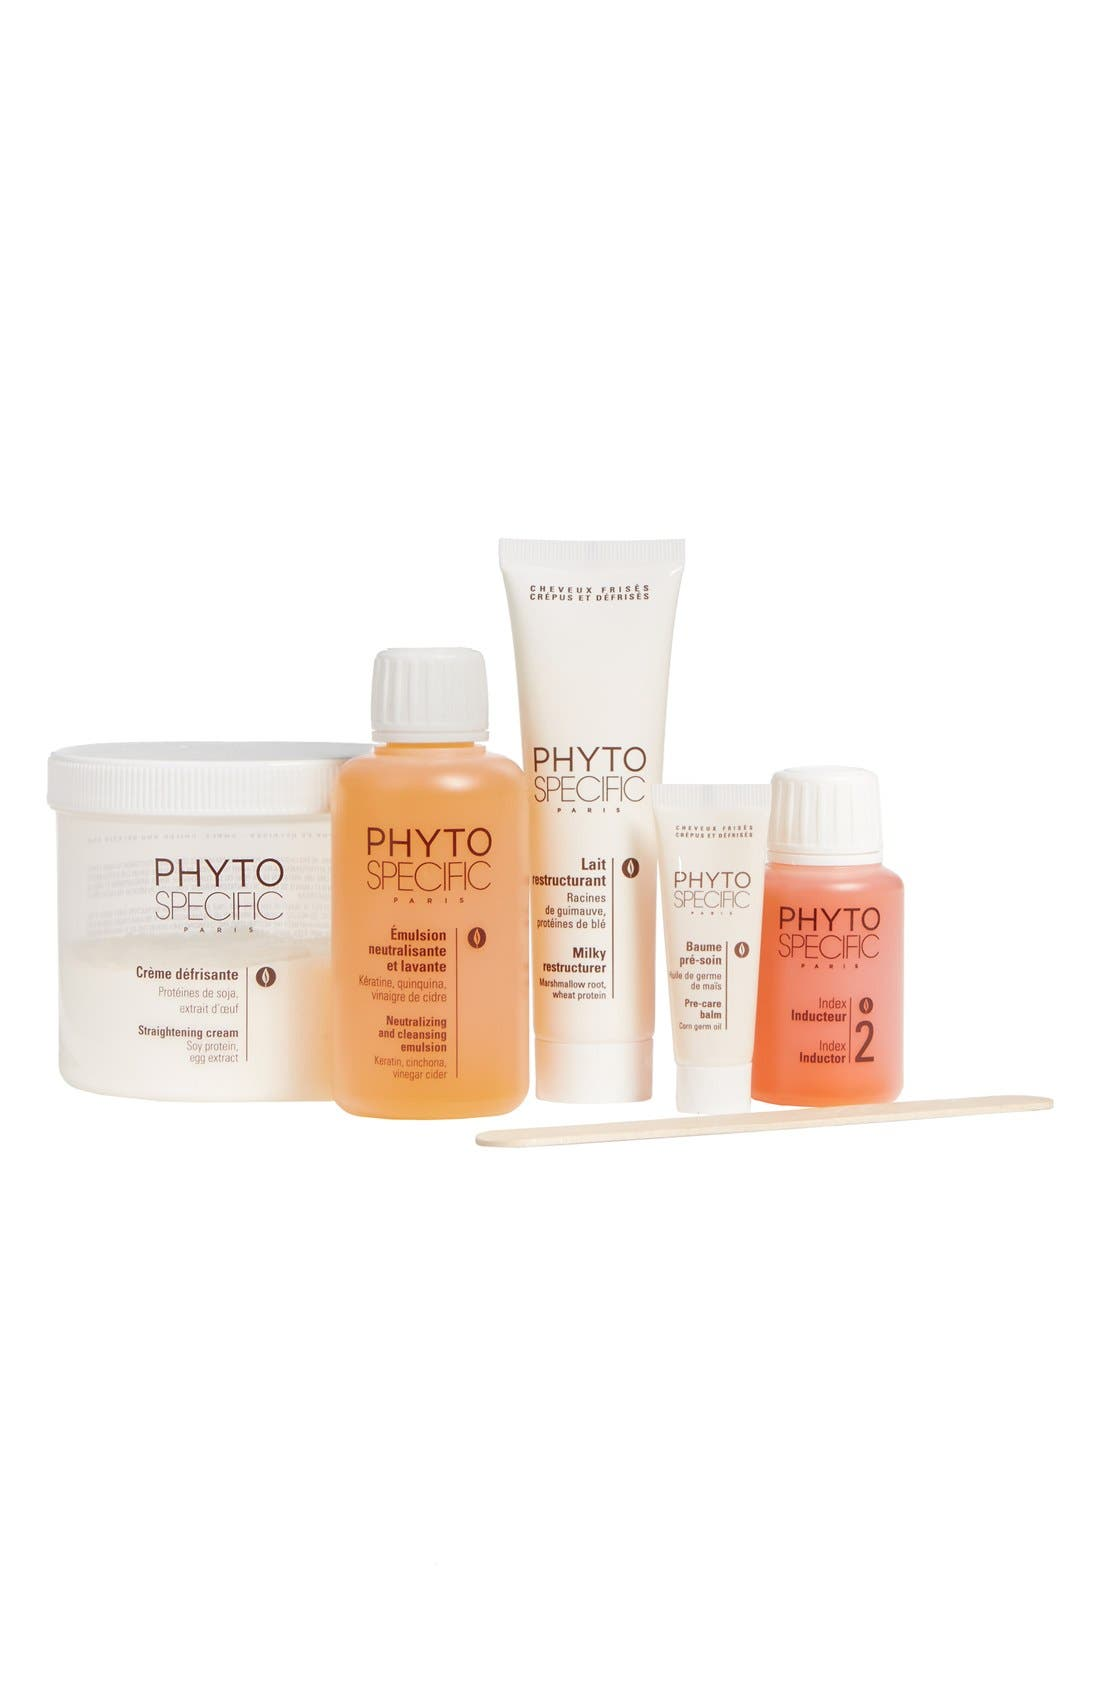 PhytoSpecific PhytoRelaxer Index 2 Treatment Set for Normal, Thick or Resistant Hair,                             Main thumbnail 1, color,                             000